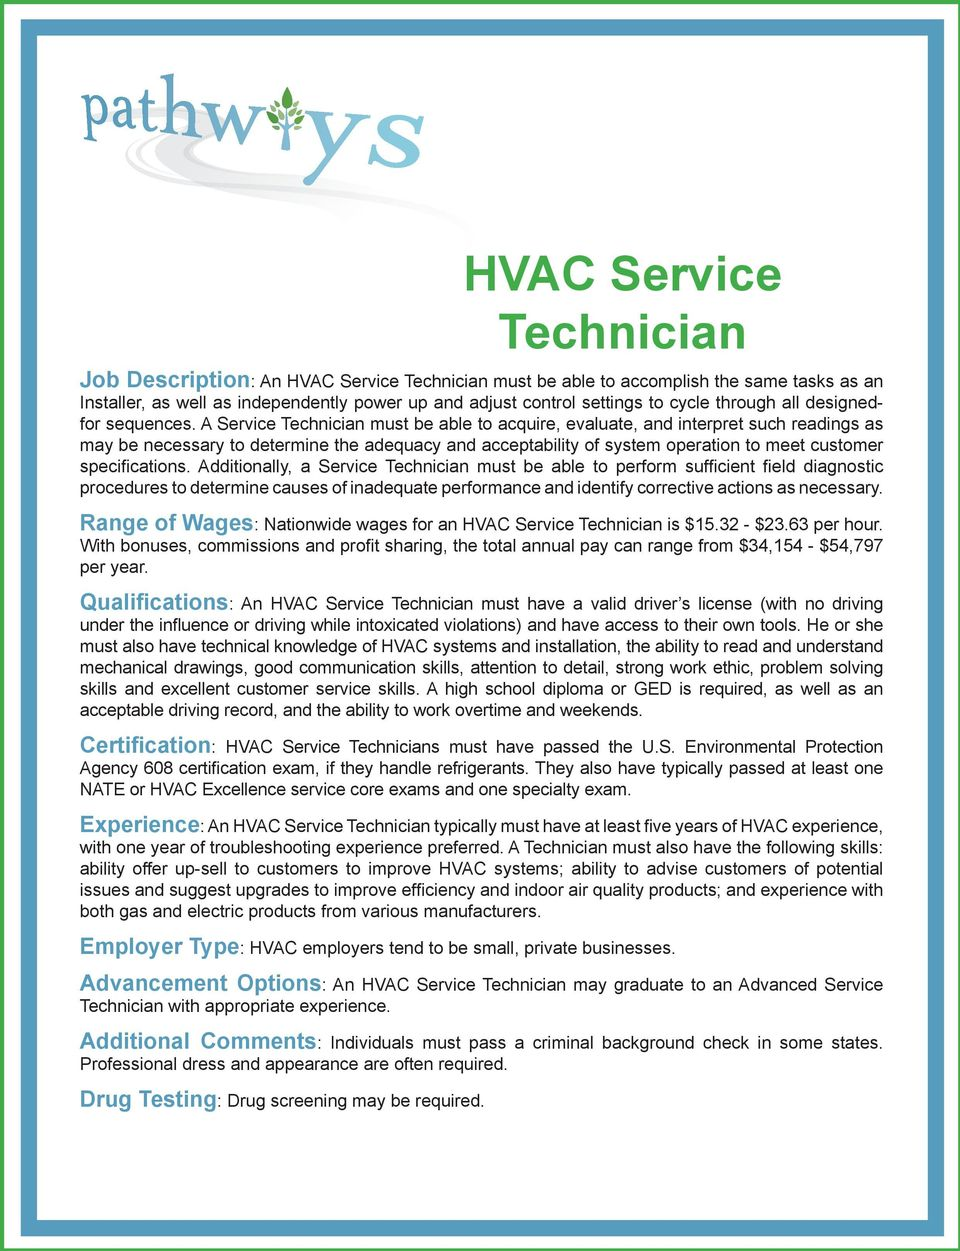 A Service Technician must be able to acquire, evaluate, and interpret such readings as may be necessary to determine the adequacy and acceptability of system operation to meet customer specifications.